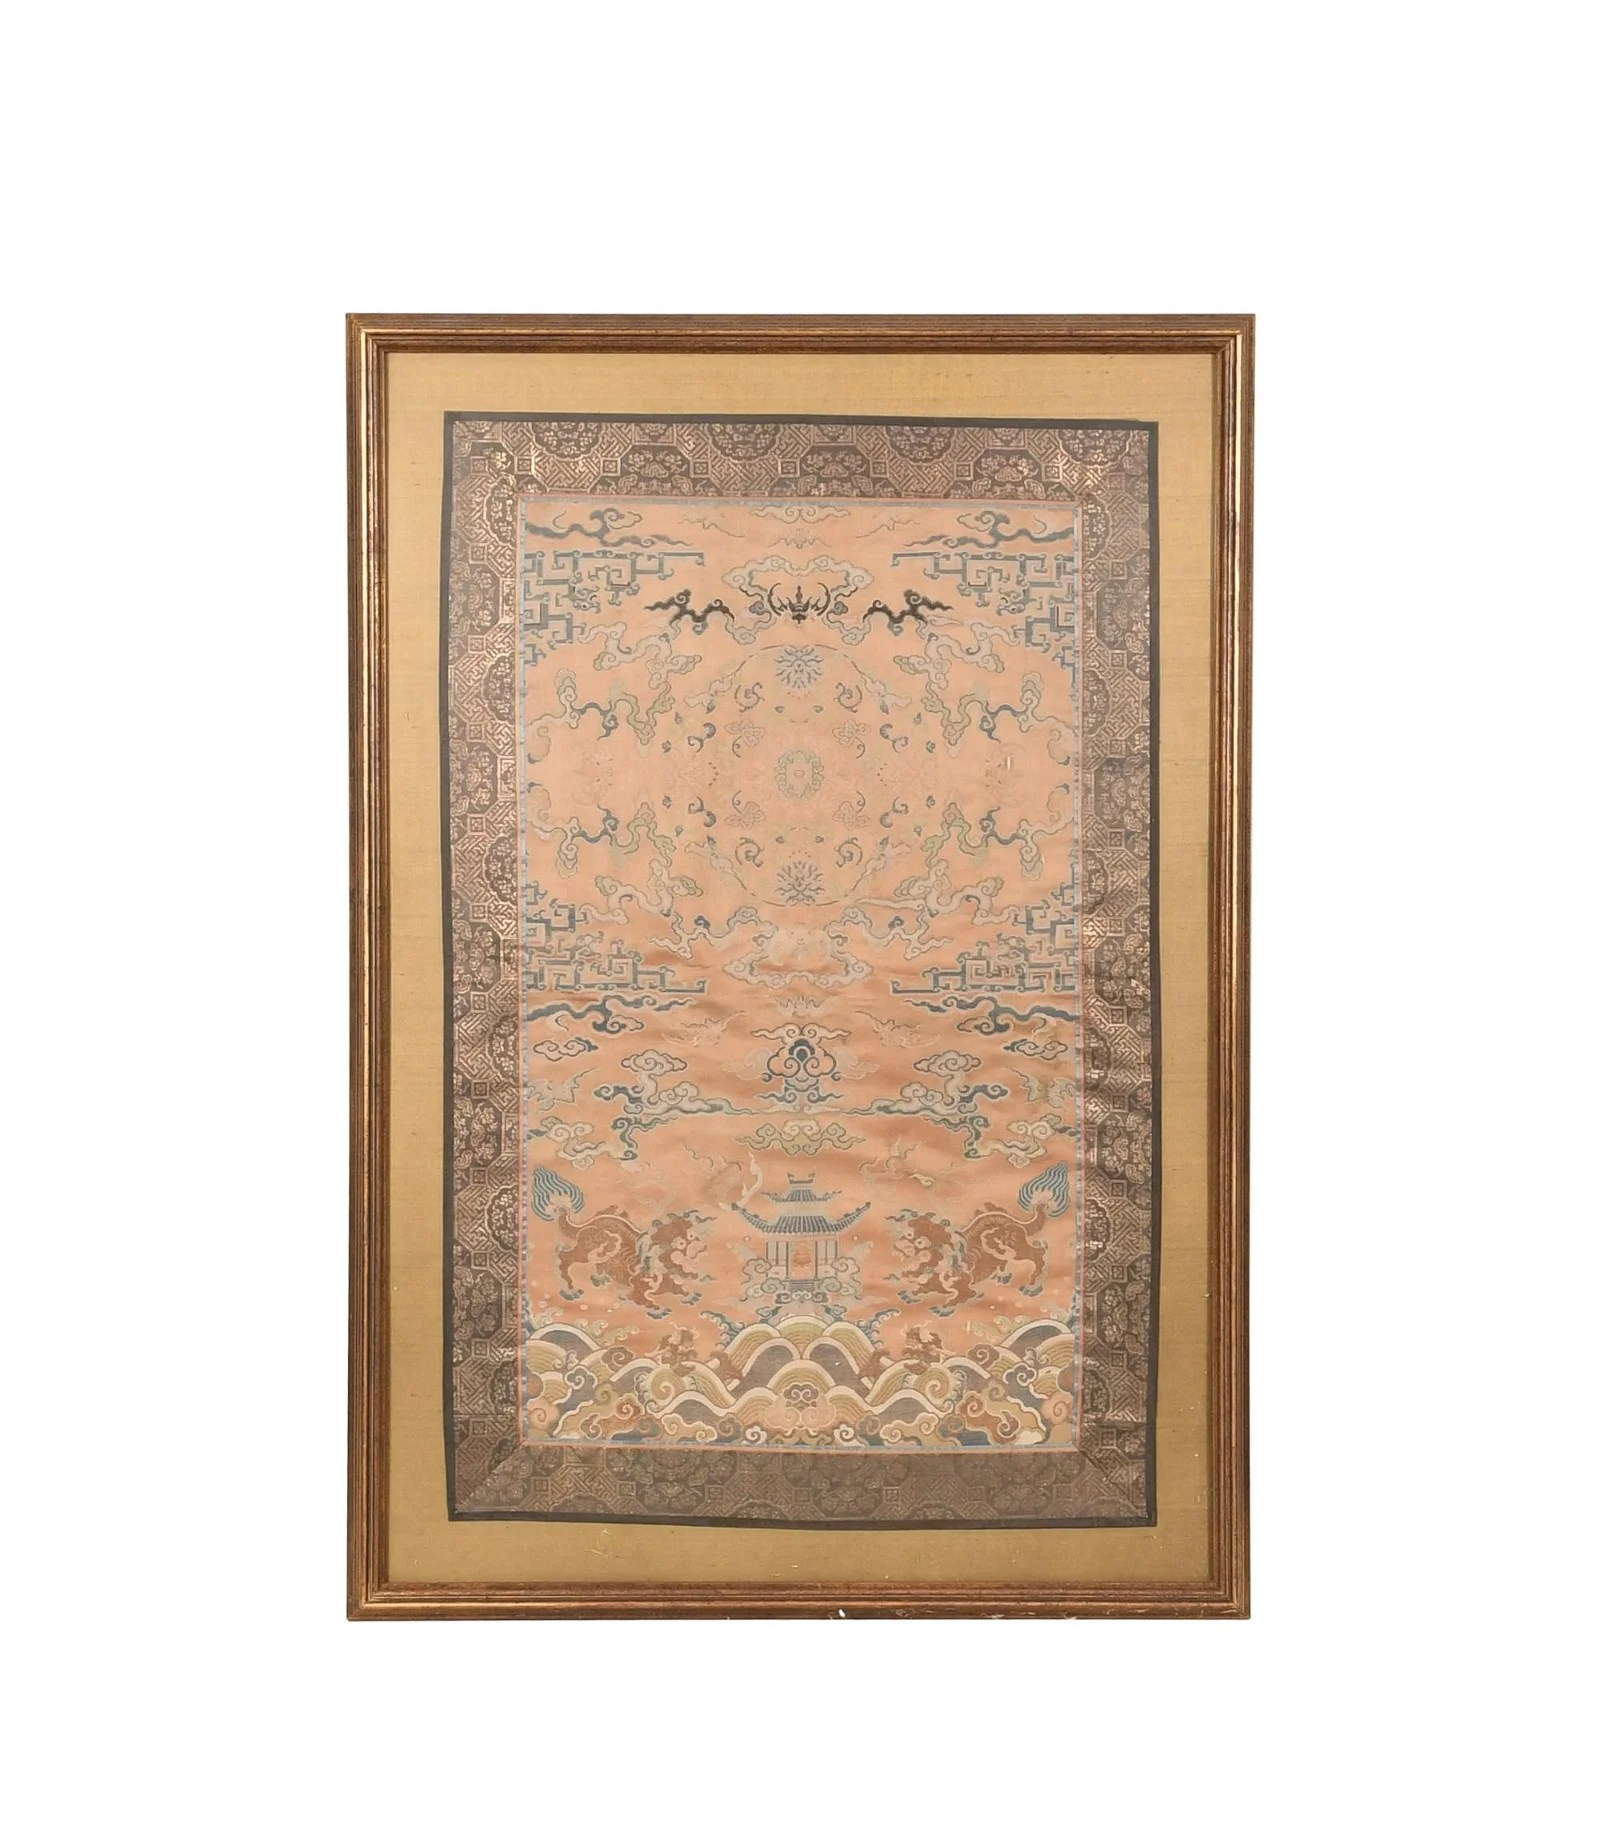 Chinese Framed Embroidery, 18th Century